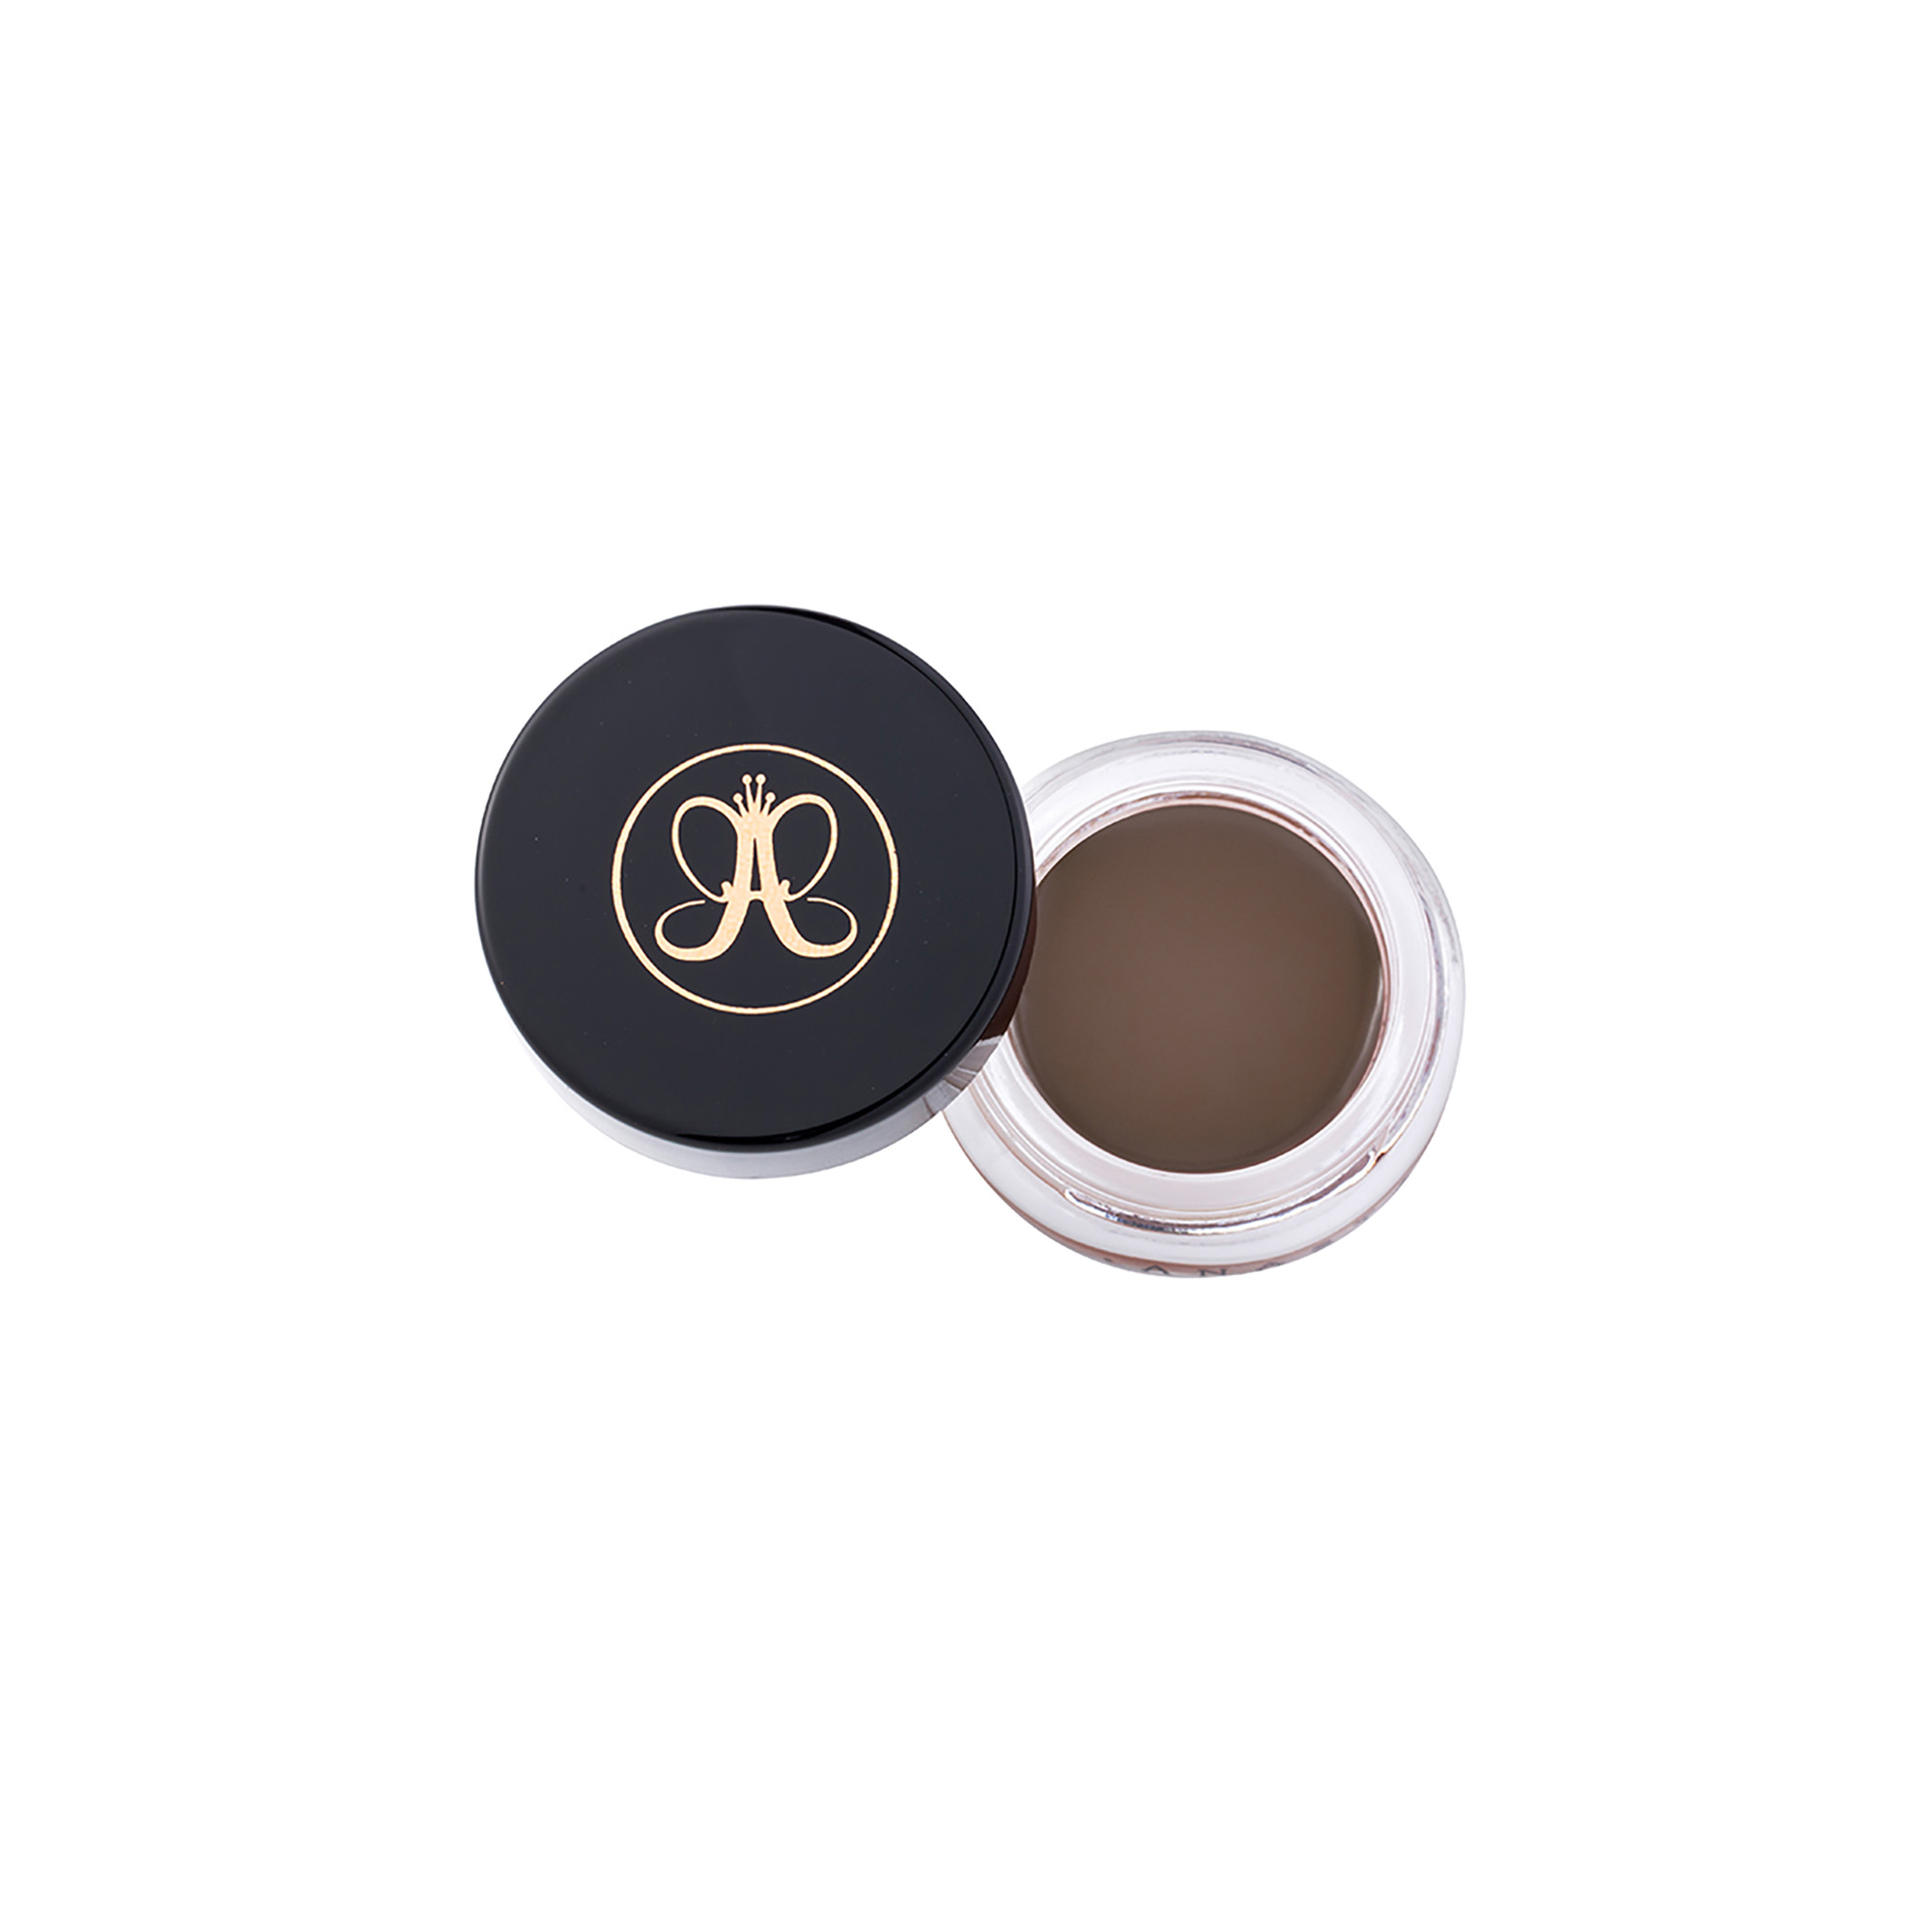 Anastasia Beverly Hills Dipbrow Brow Pomade Medium Brown - 29,50 EUR on Amazon